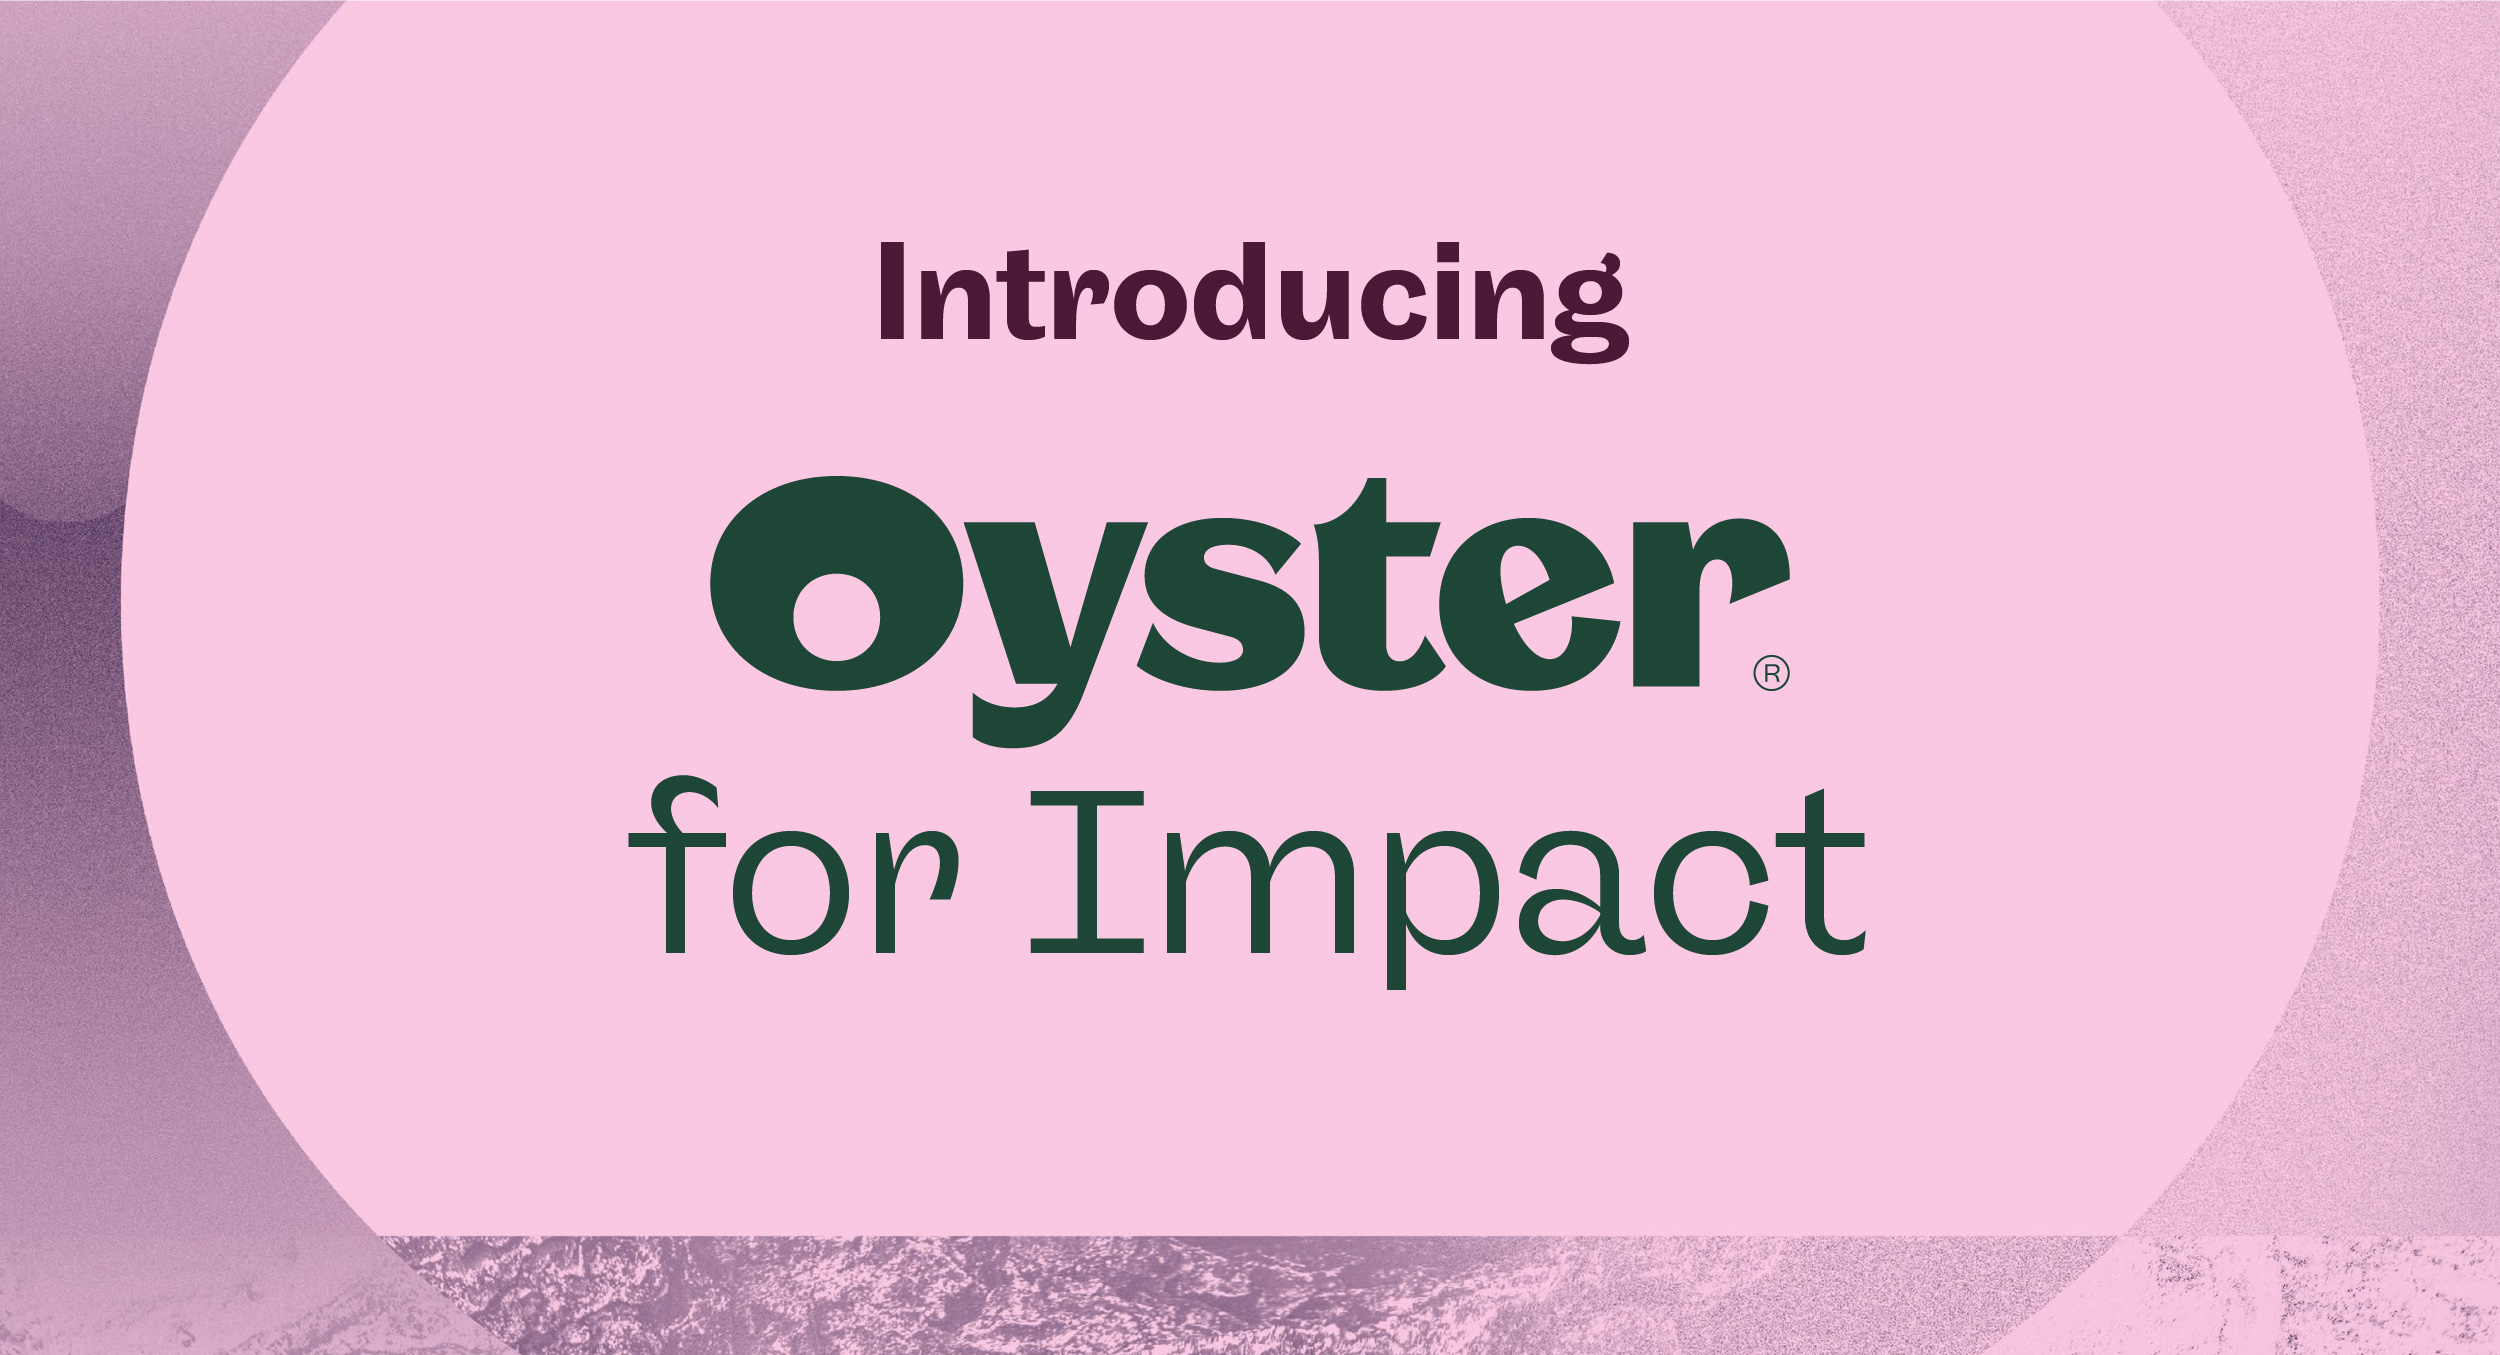 Oyster adds new investors as we launch our program for mission-driven companies